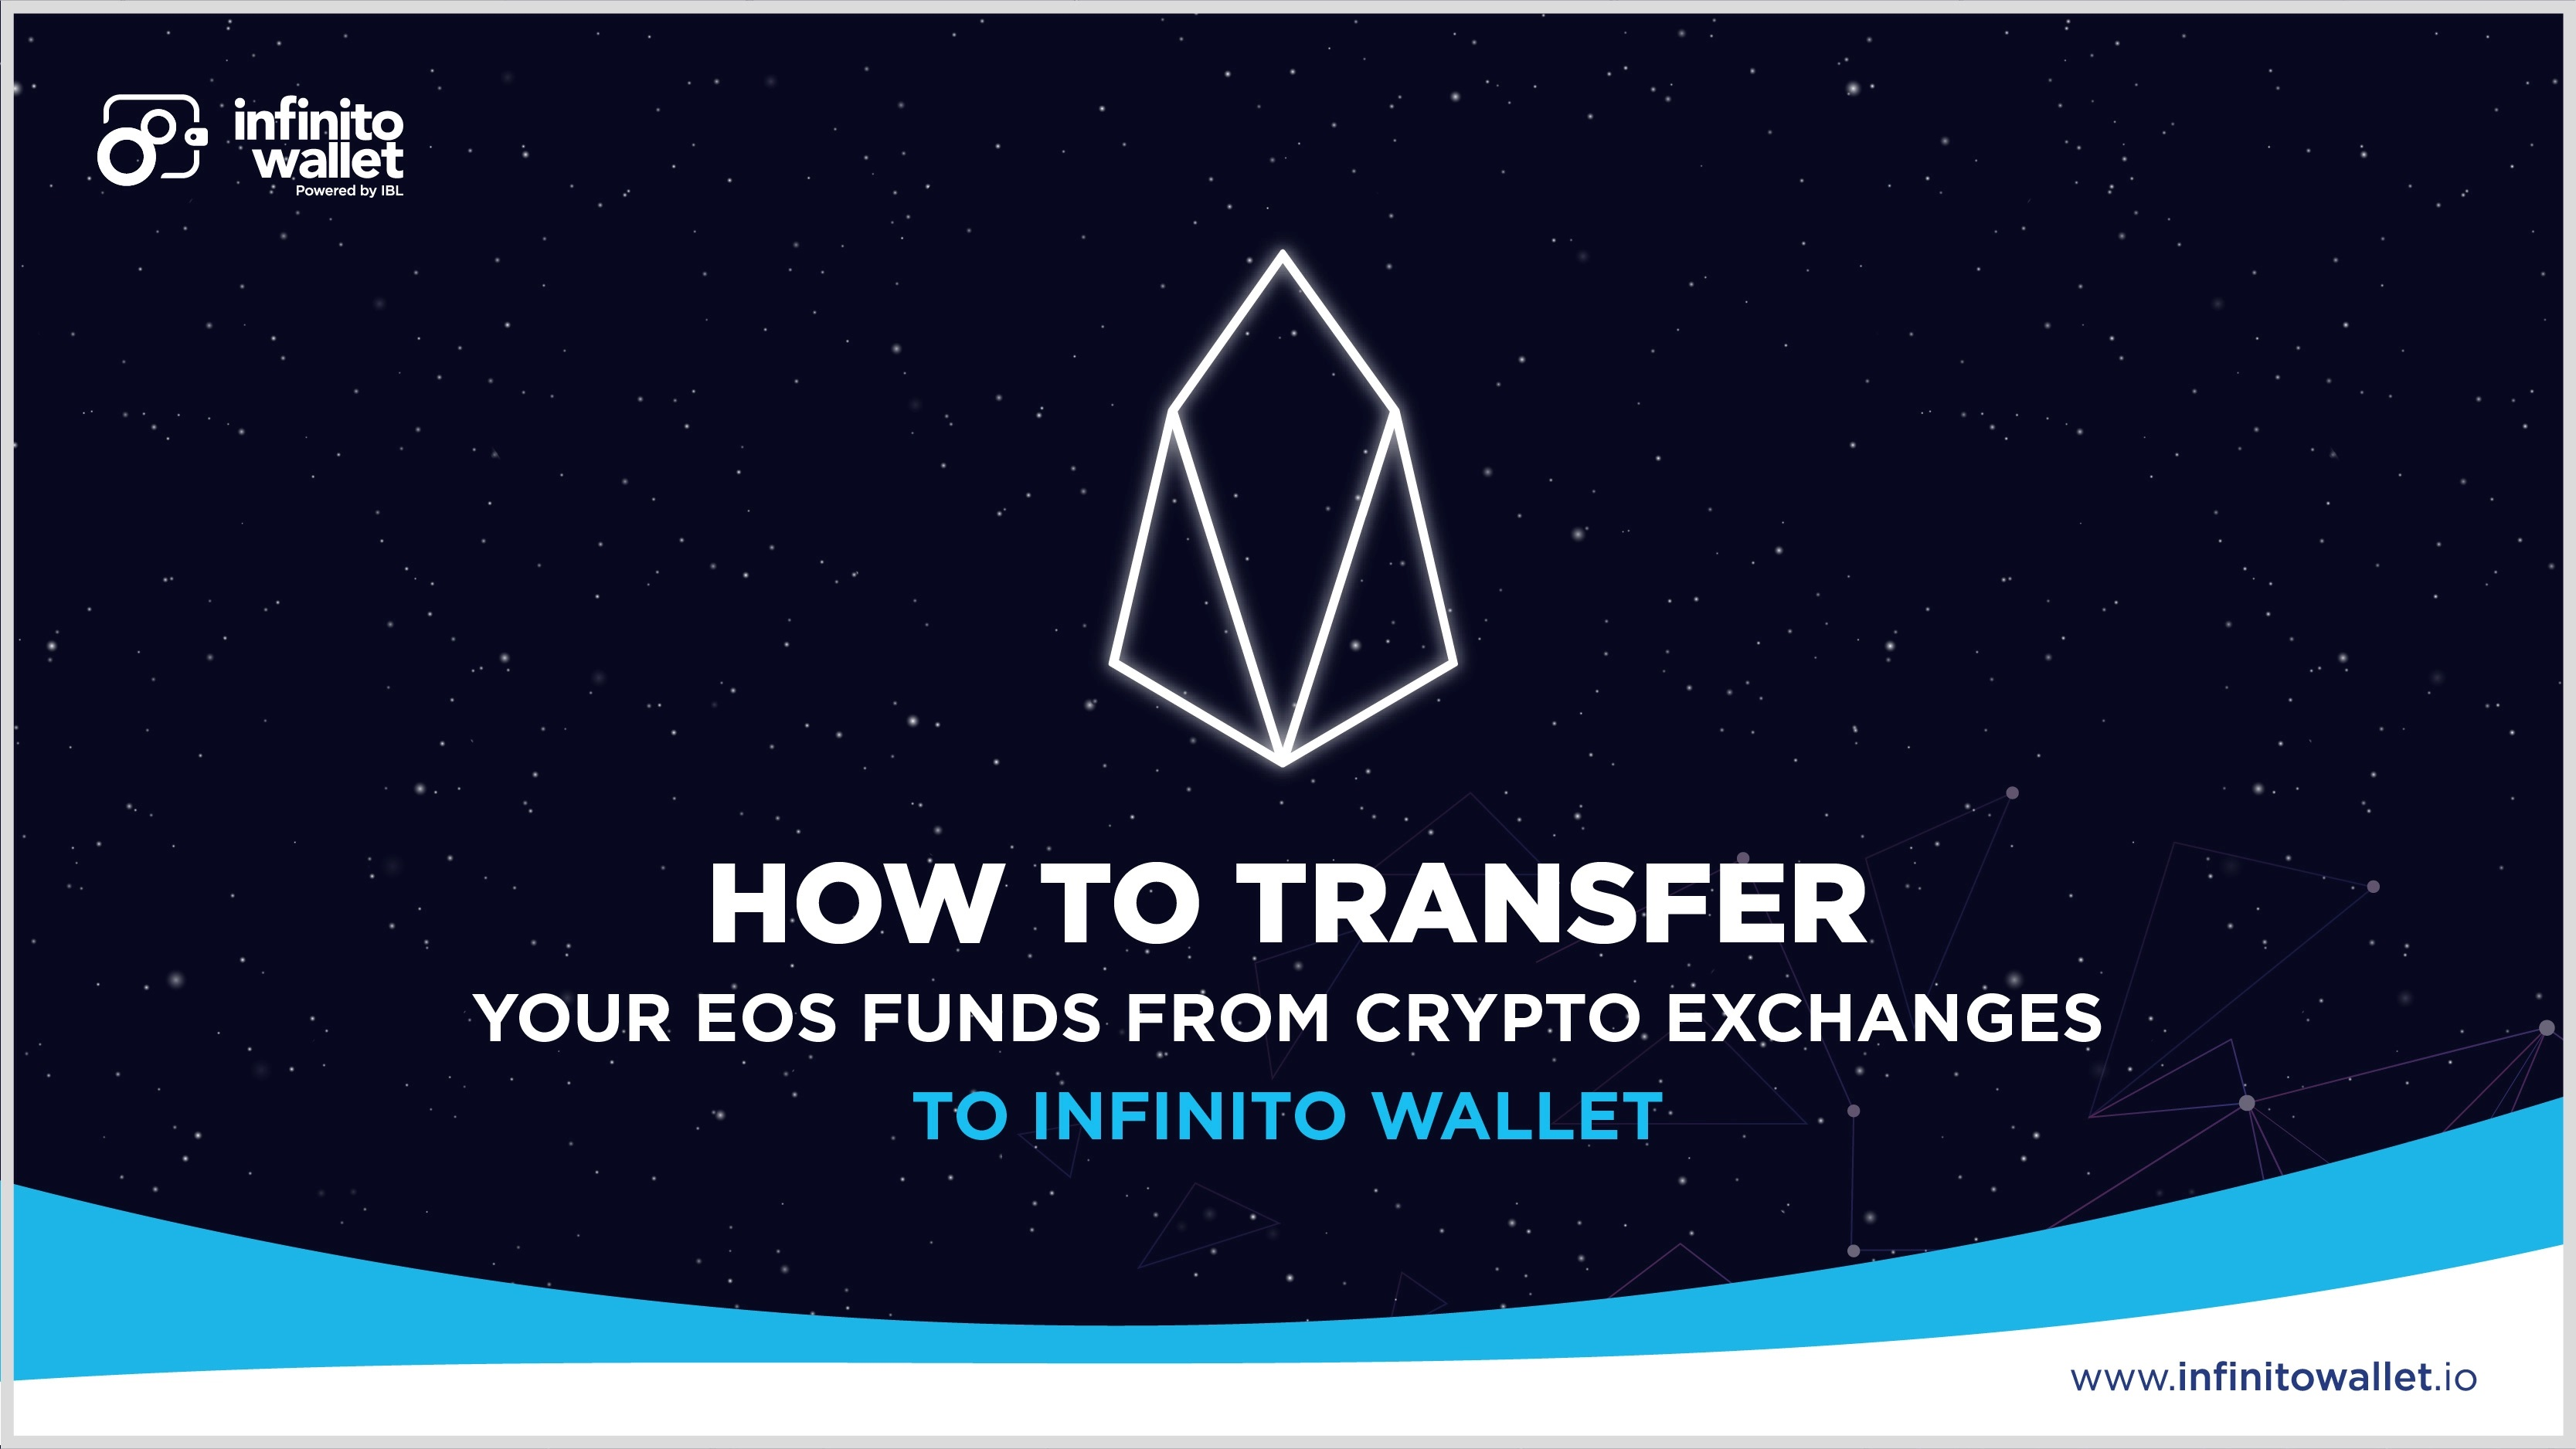 Guide: How to Transfer Your EOS Funds from Crypto Exchanges